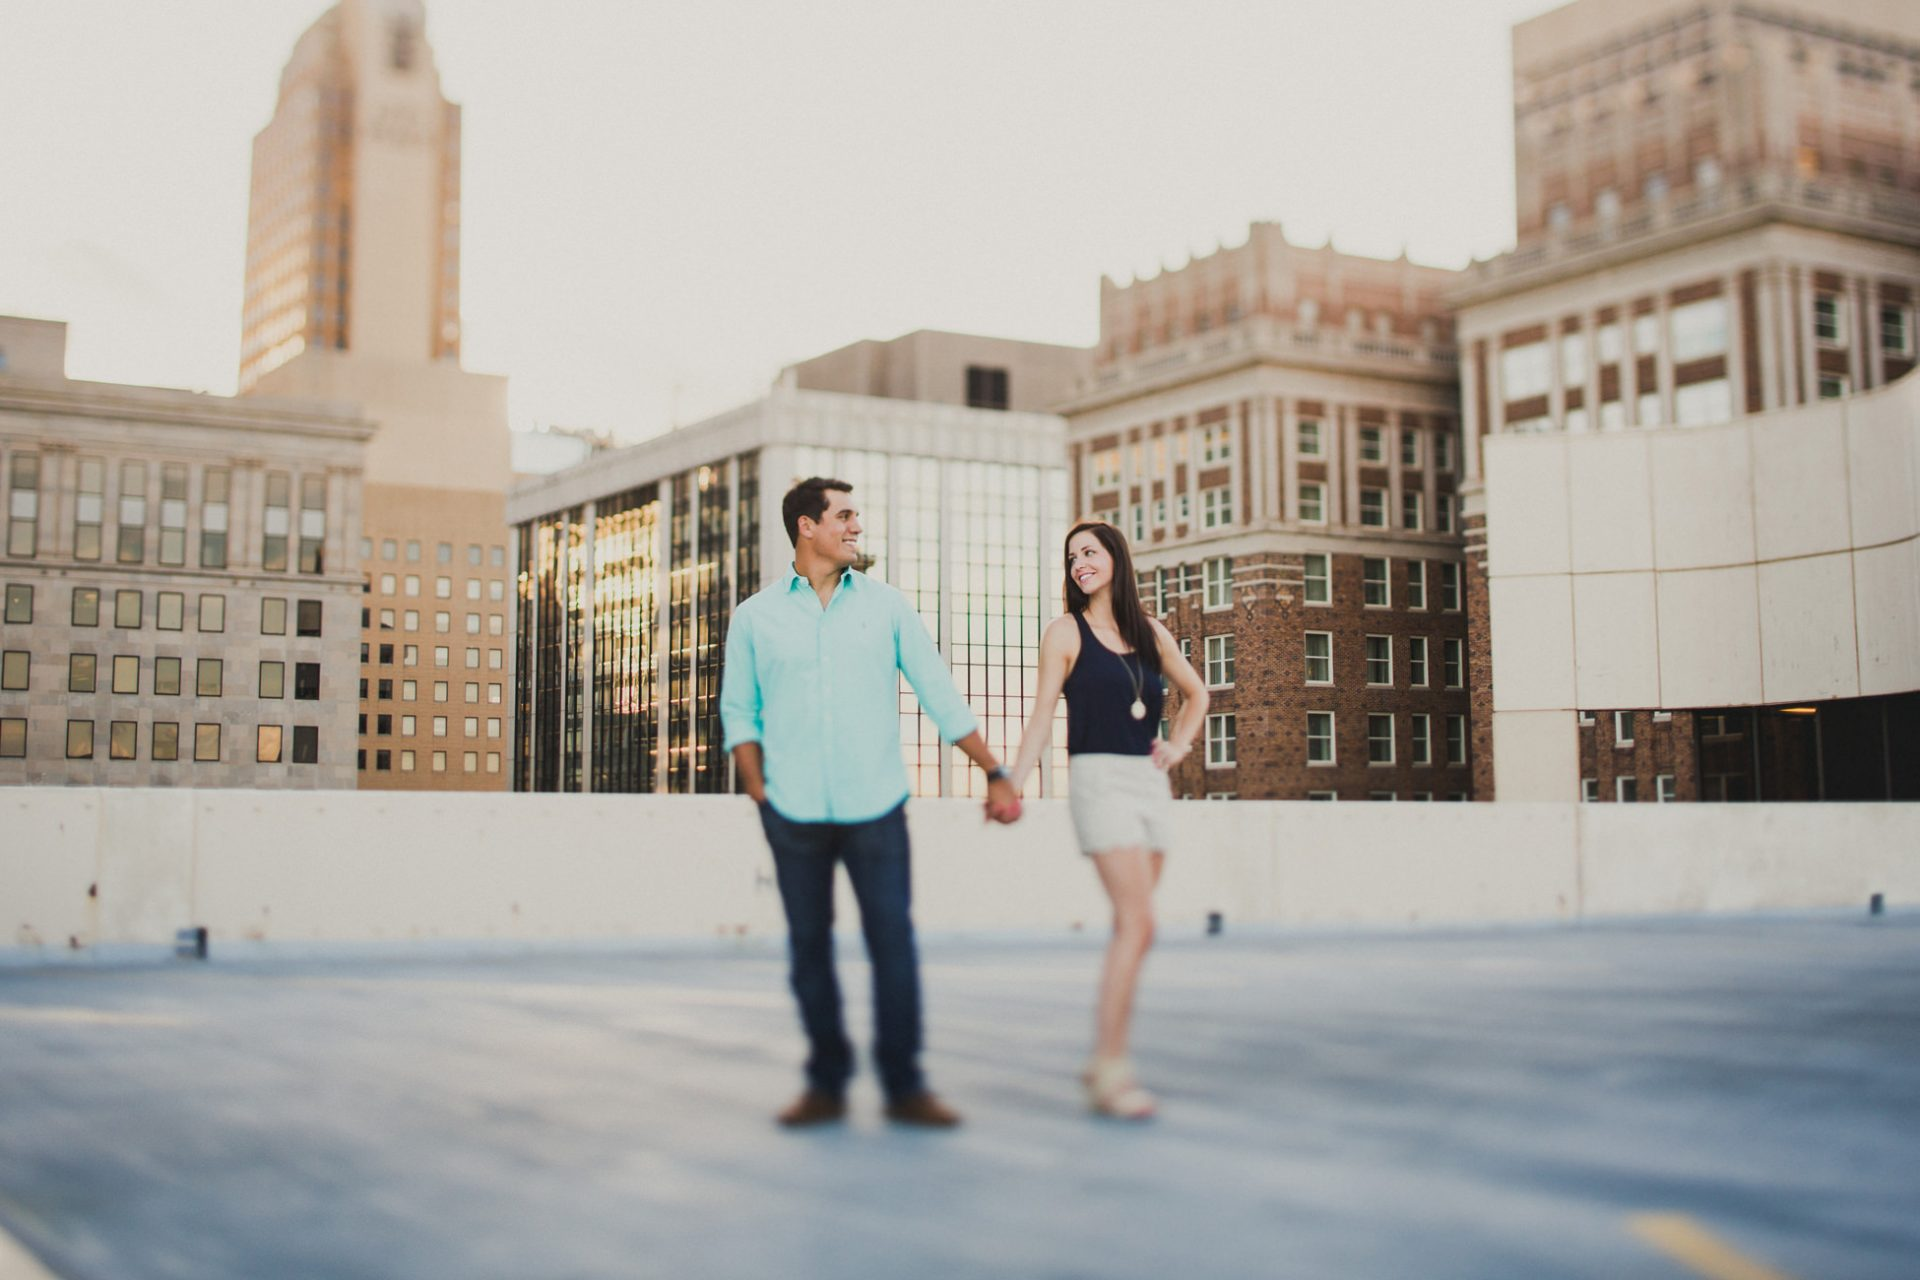 best-top-los-angeles-oklahoma-destination-engagement-photographer-hipster-modern-quirky-editorial-romantic-epic-40-parking-garage